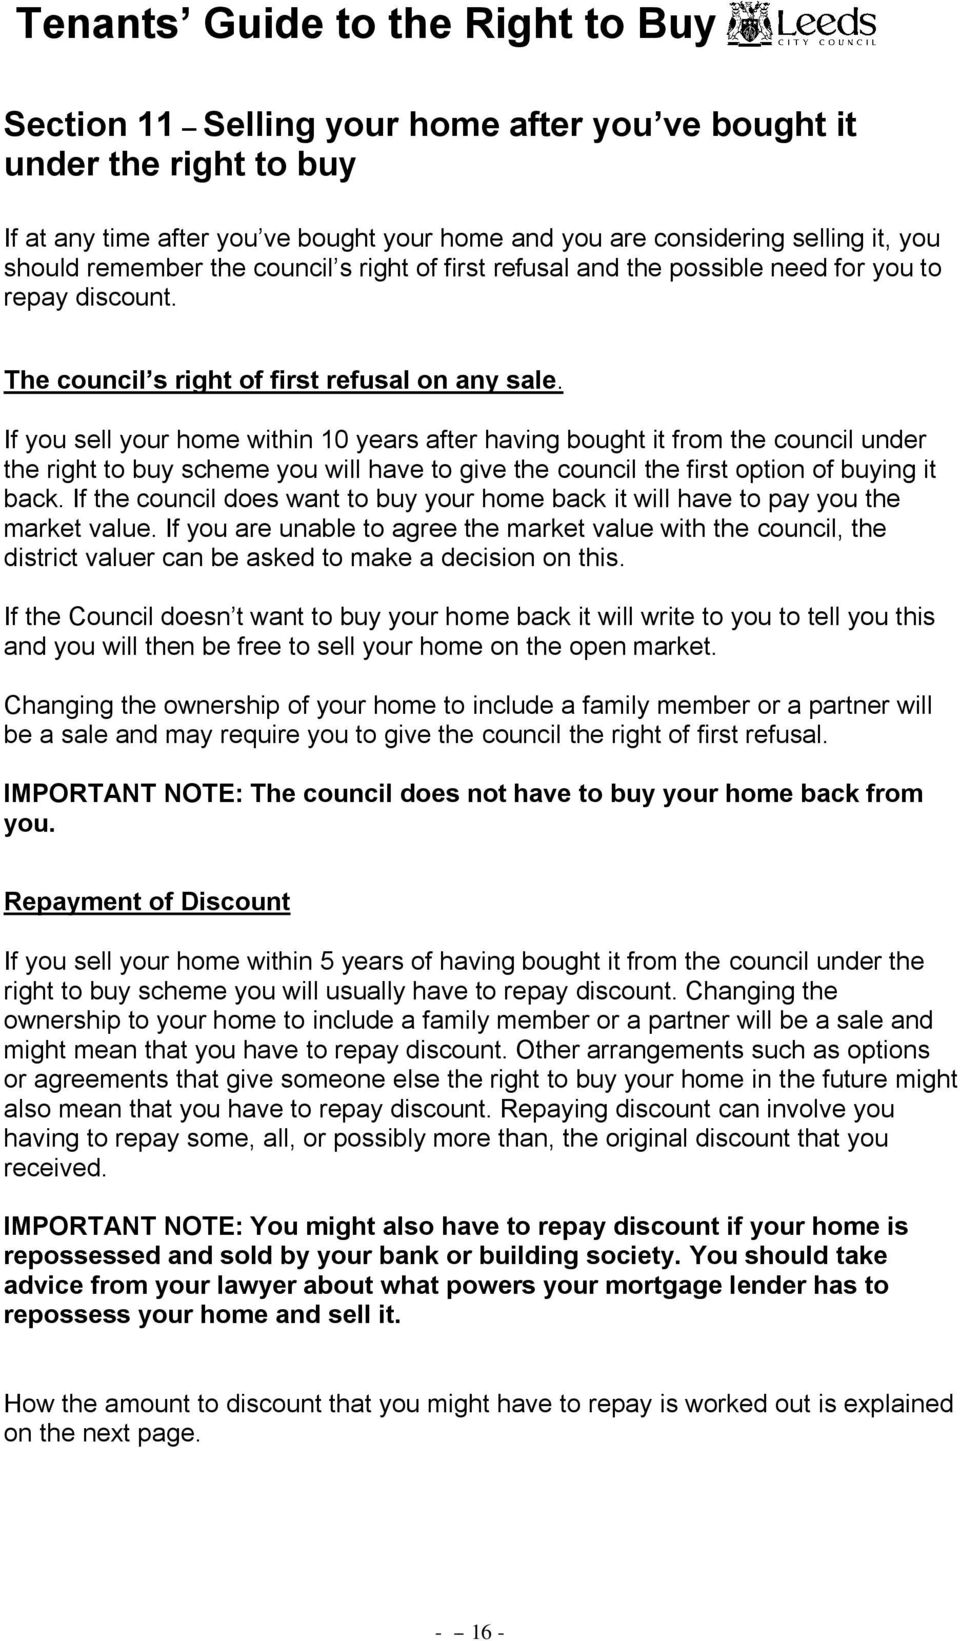 If you sell your home within 10 years after having bought it from the council under the right to buy scheme you will have to give the council the first option of buying it back.